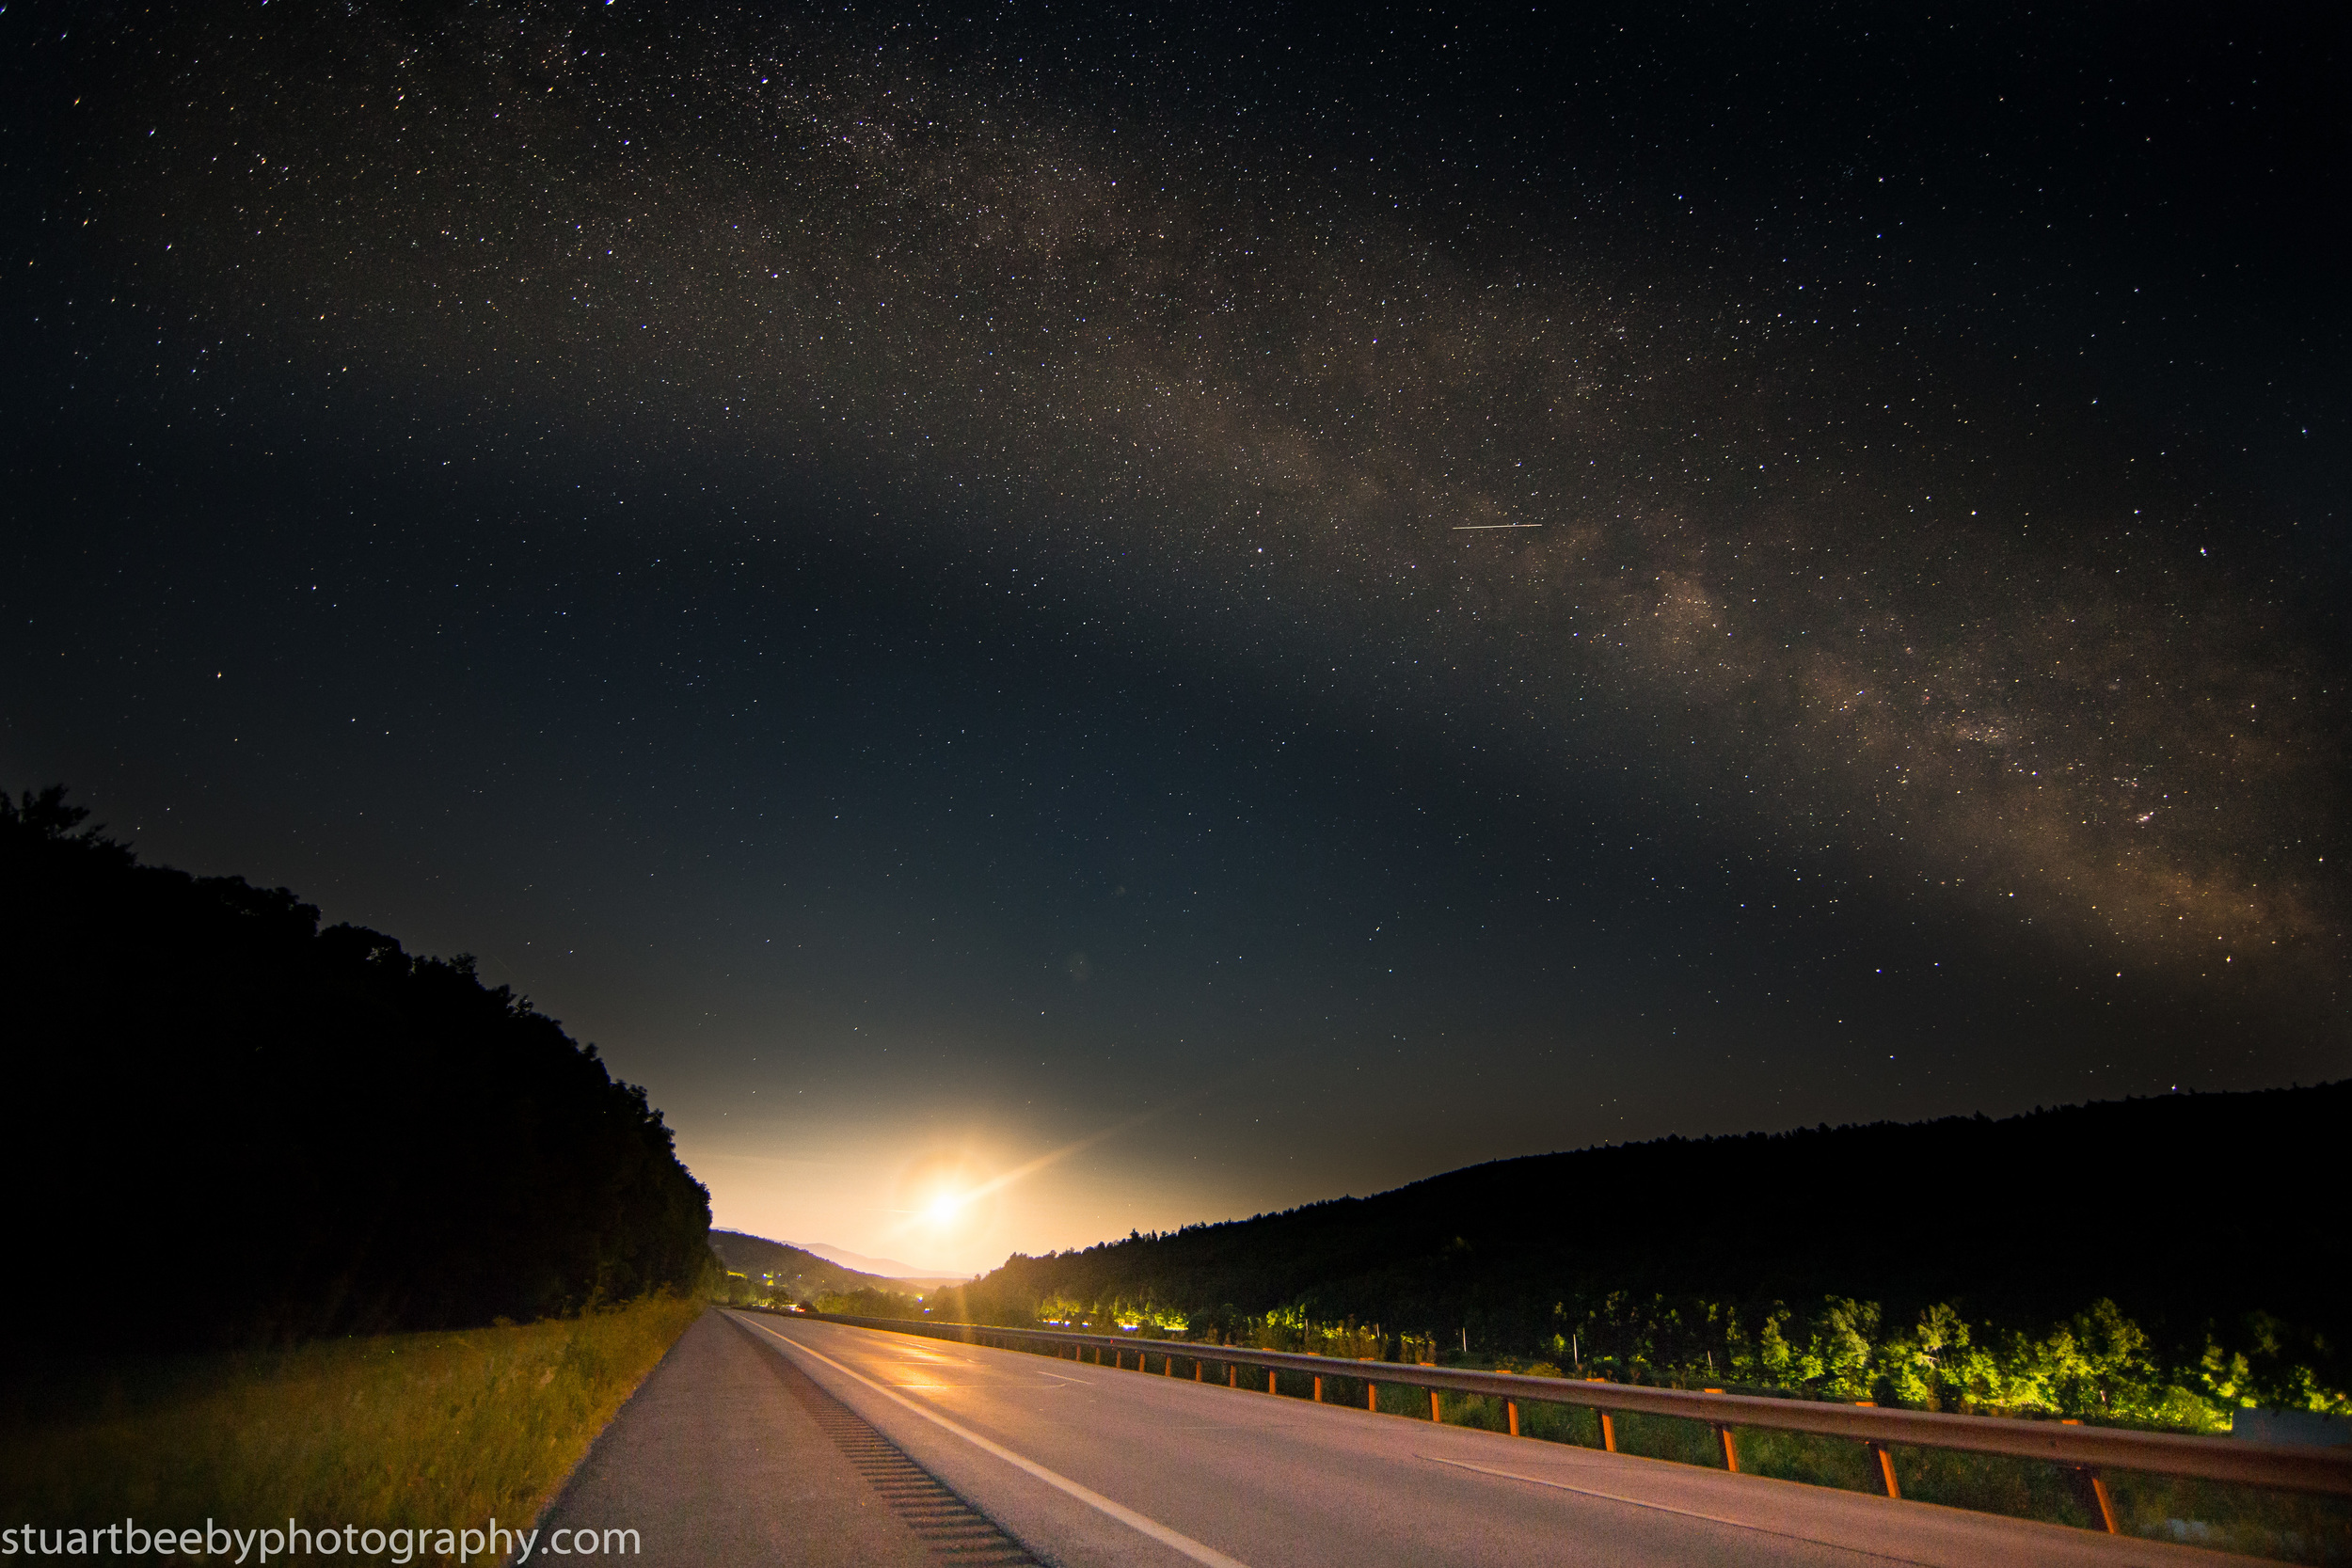 Stuart Beeby: Canon 6D, 14mm, ISO 2000, F2.8, 15 seconds